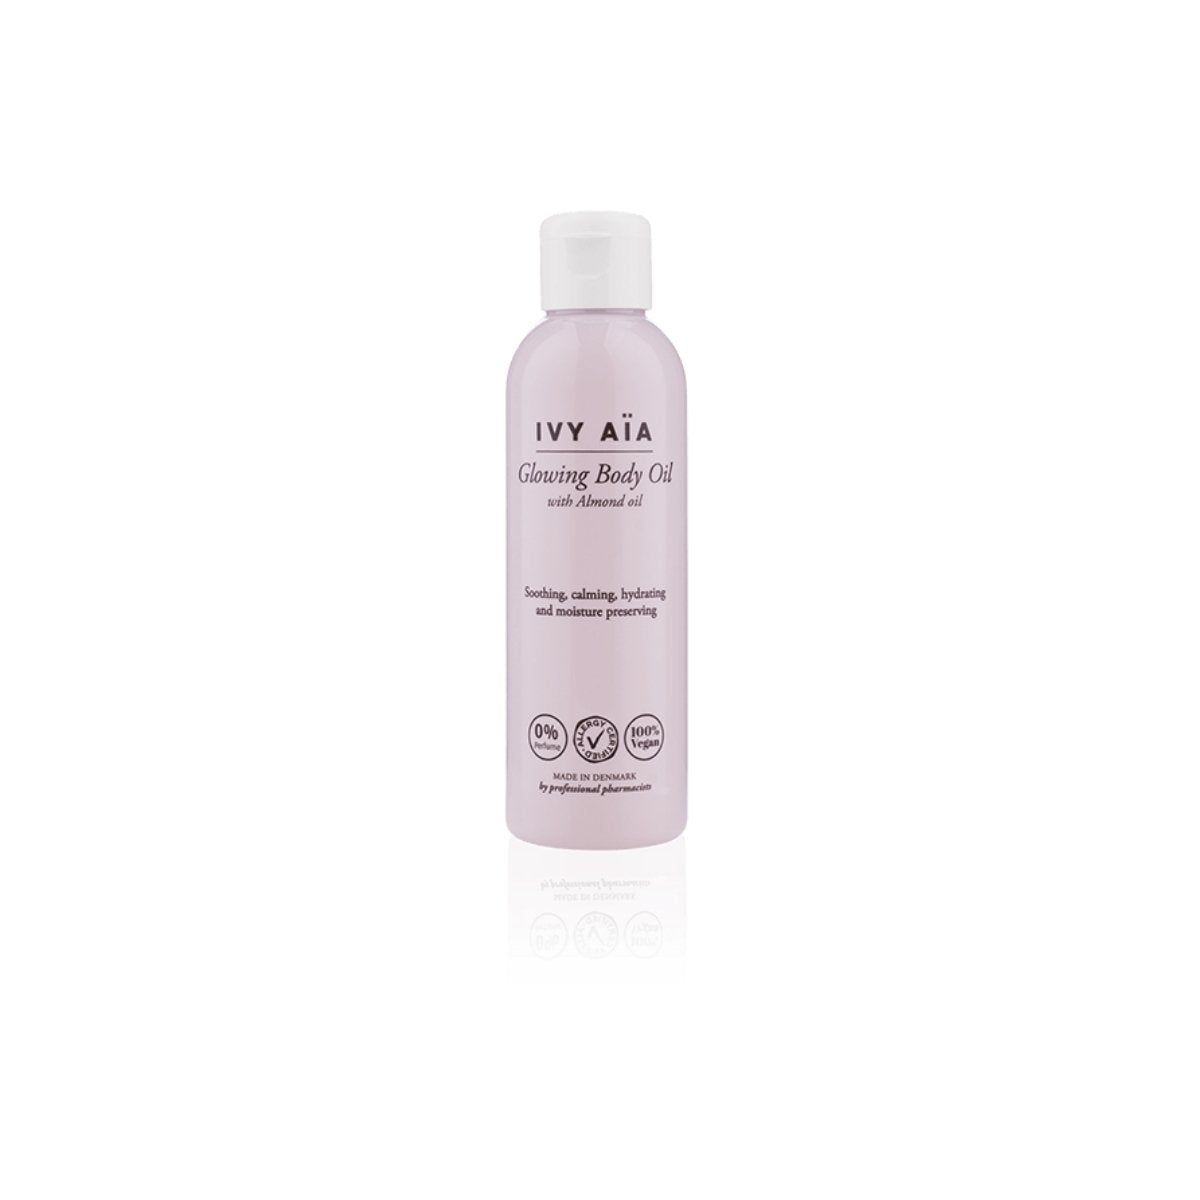 IVY AïA Glowing Body Oil with Almond Oil- Nulallergi.dk